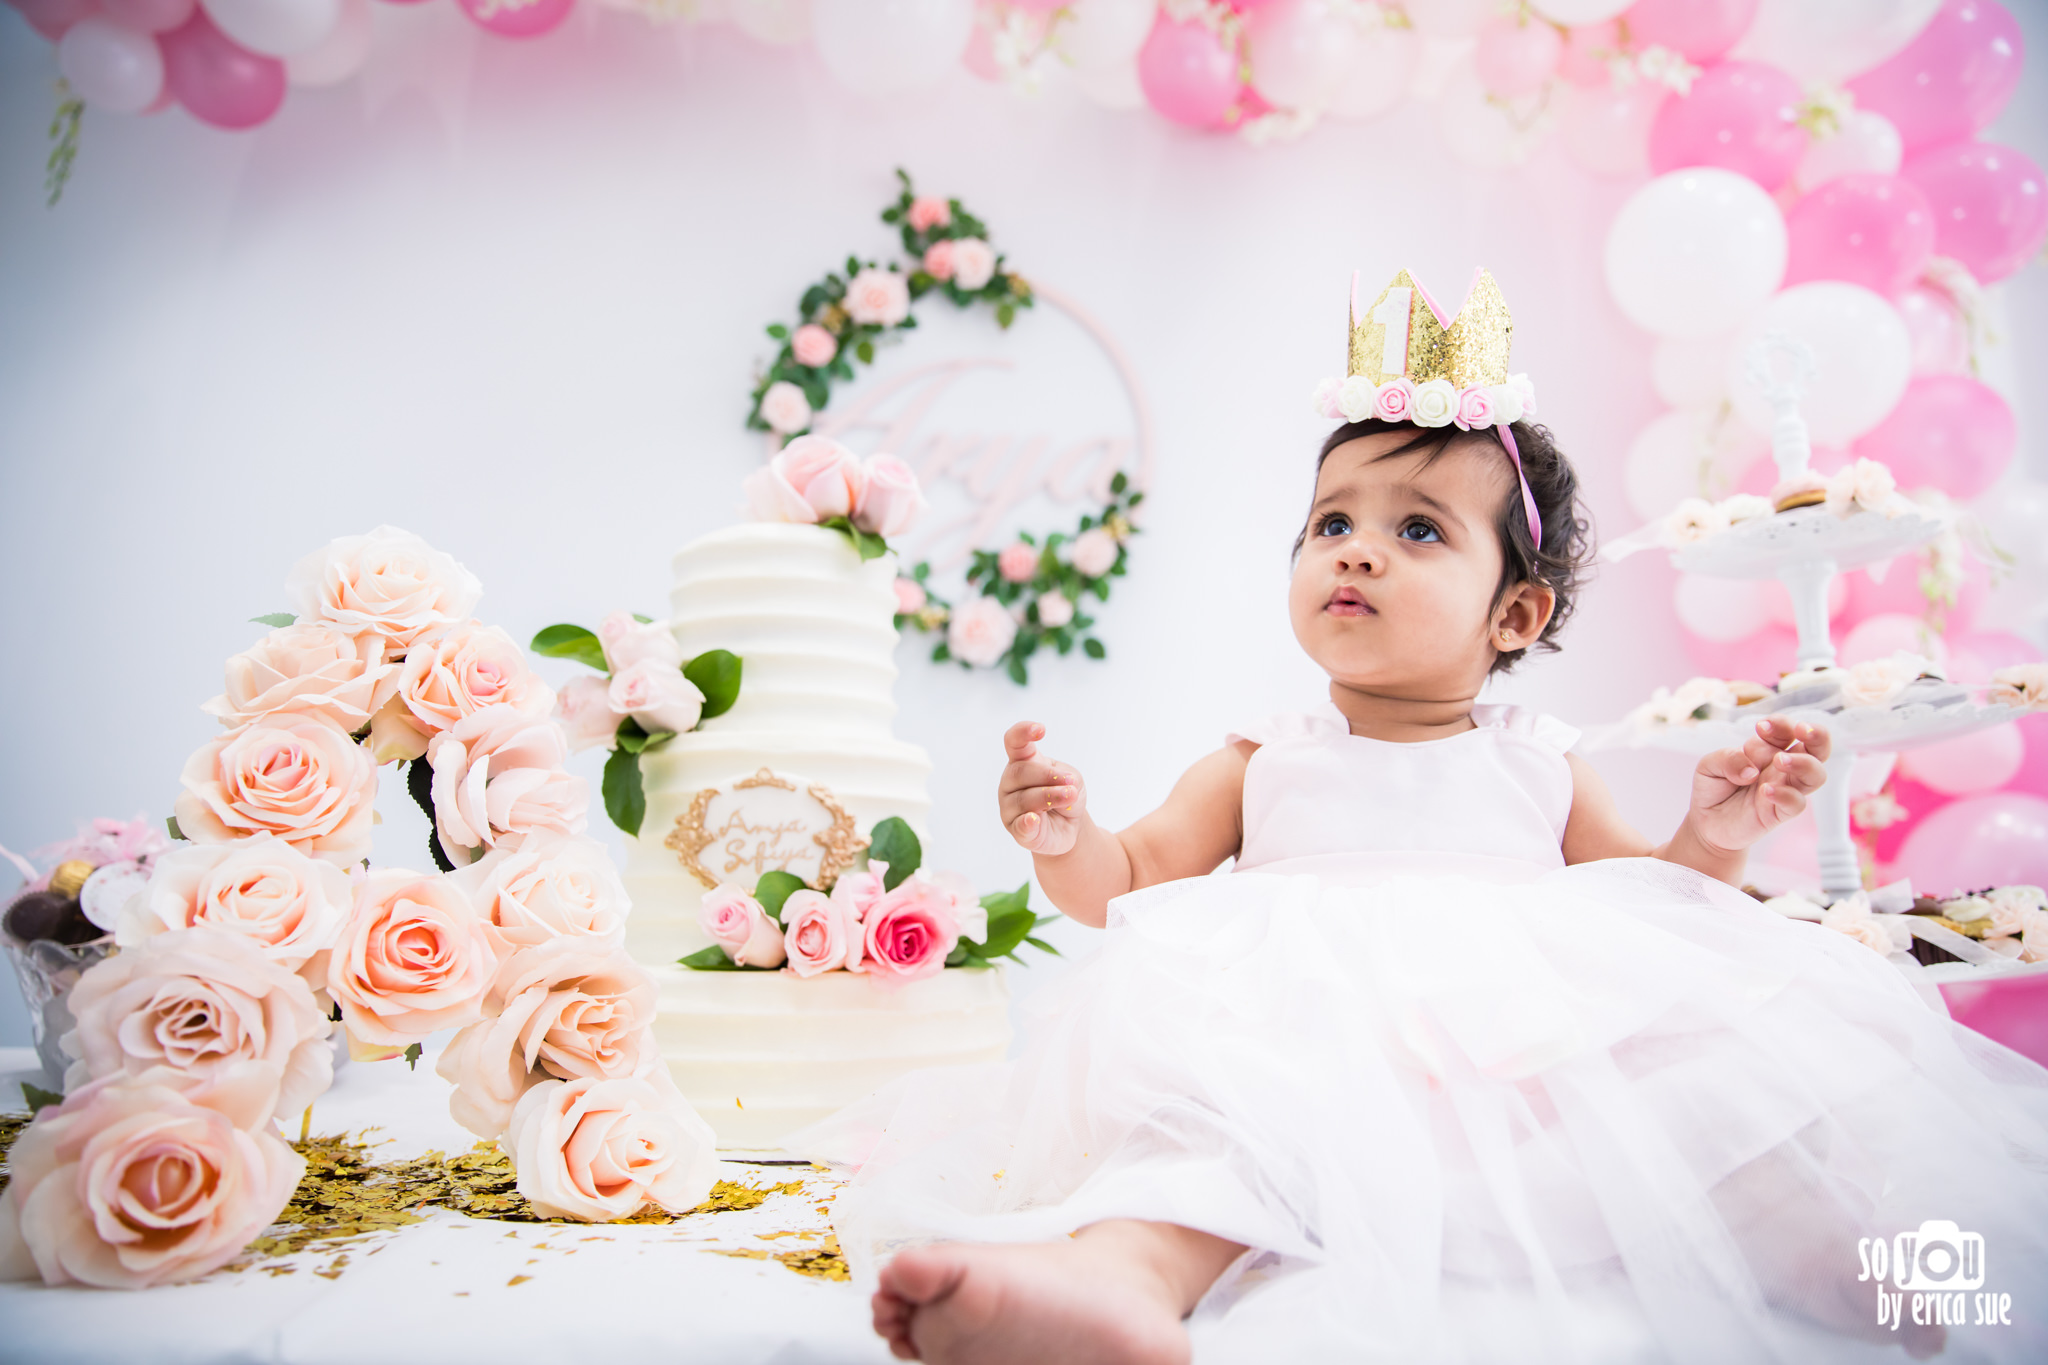 so-you-by-erica-sue-first-birthday-photographer-pembroke-pines-5462.jpg